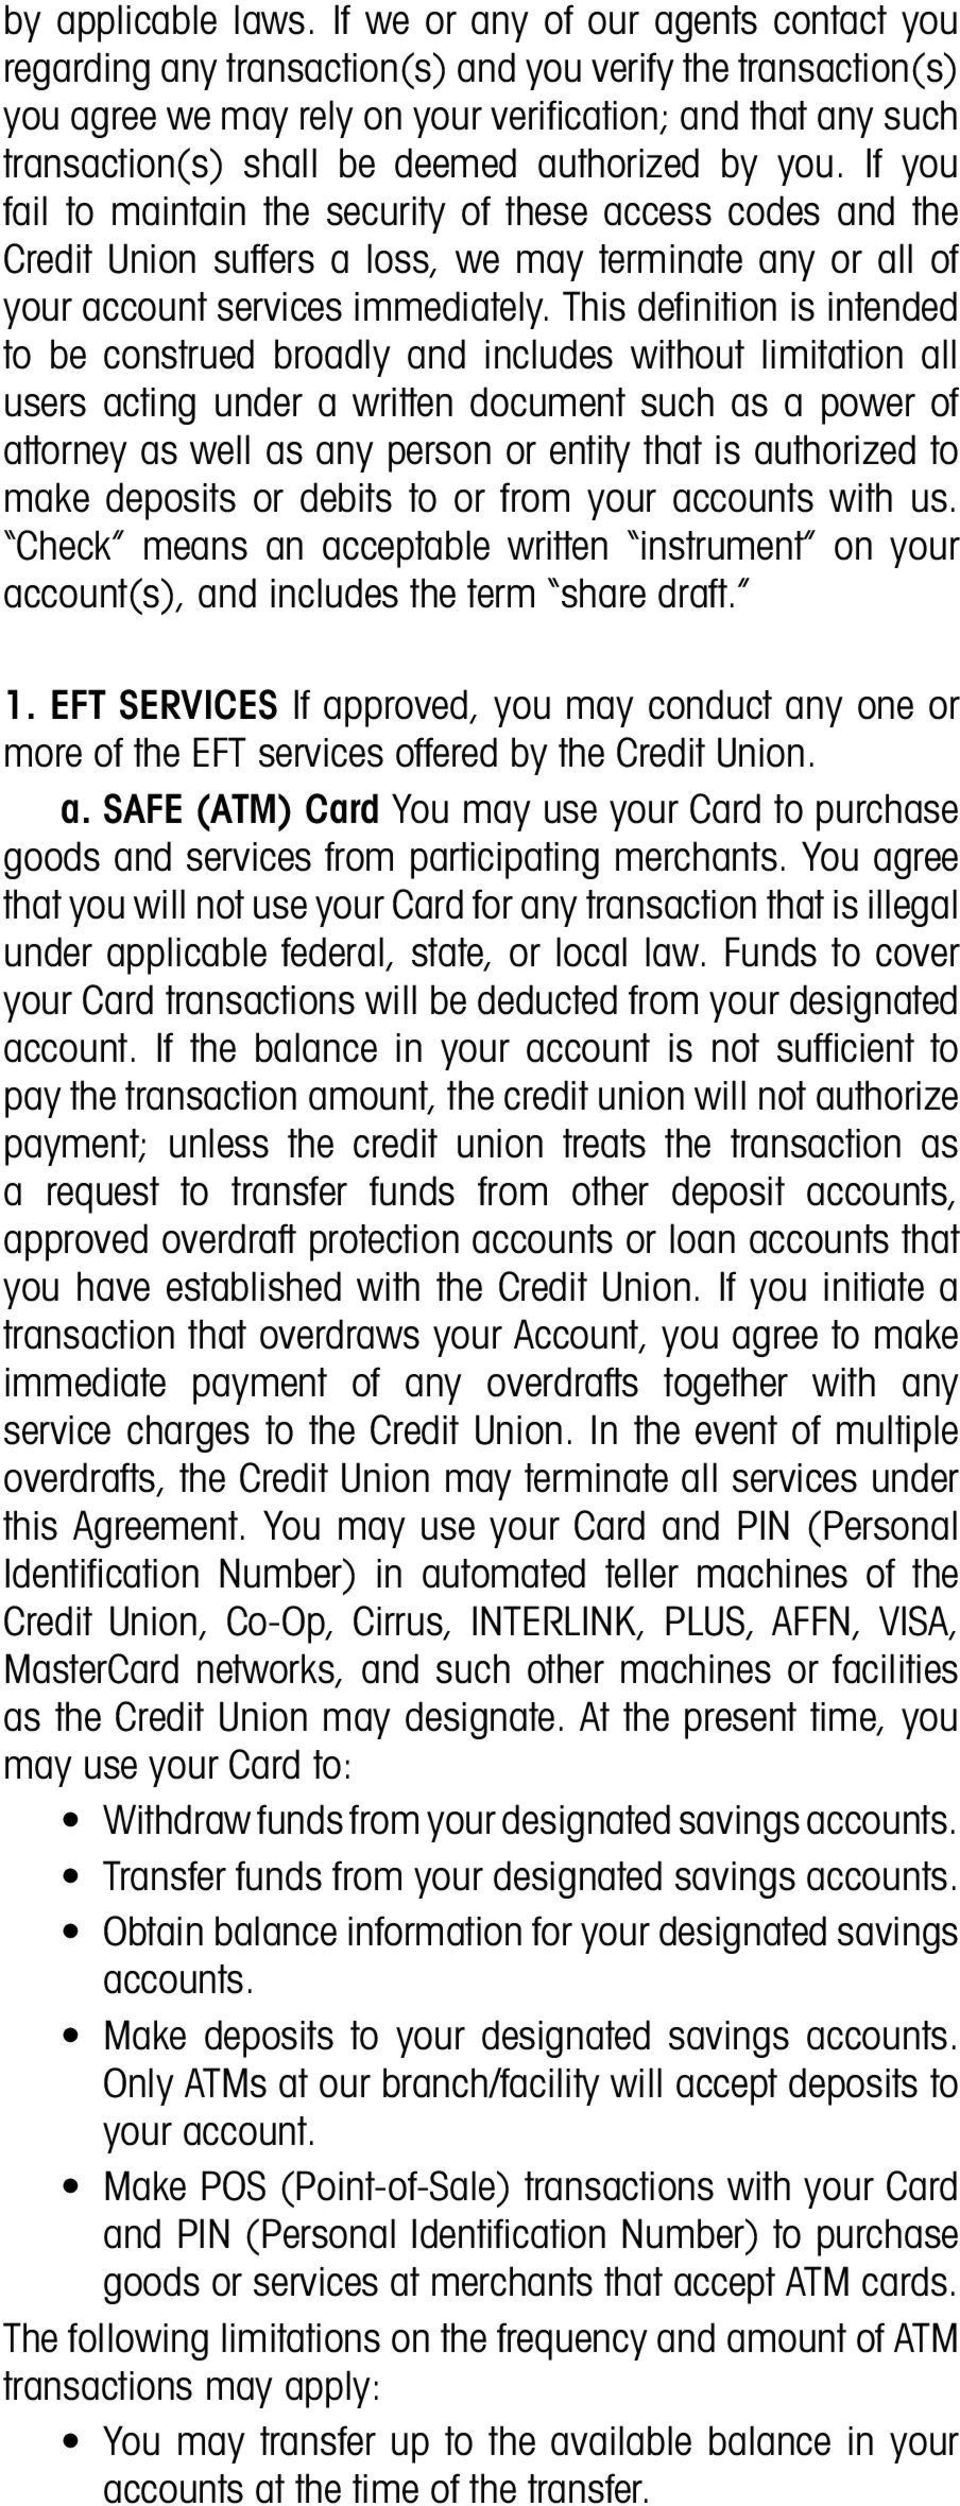 authorized by you. If you fail to maintain the security of these access codes and the Credit Union suffers a loss, we may terminate any or all of your account services immediately.